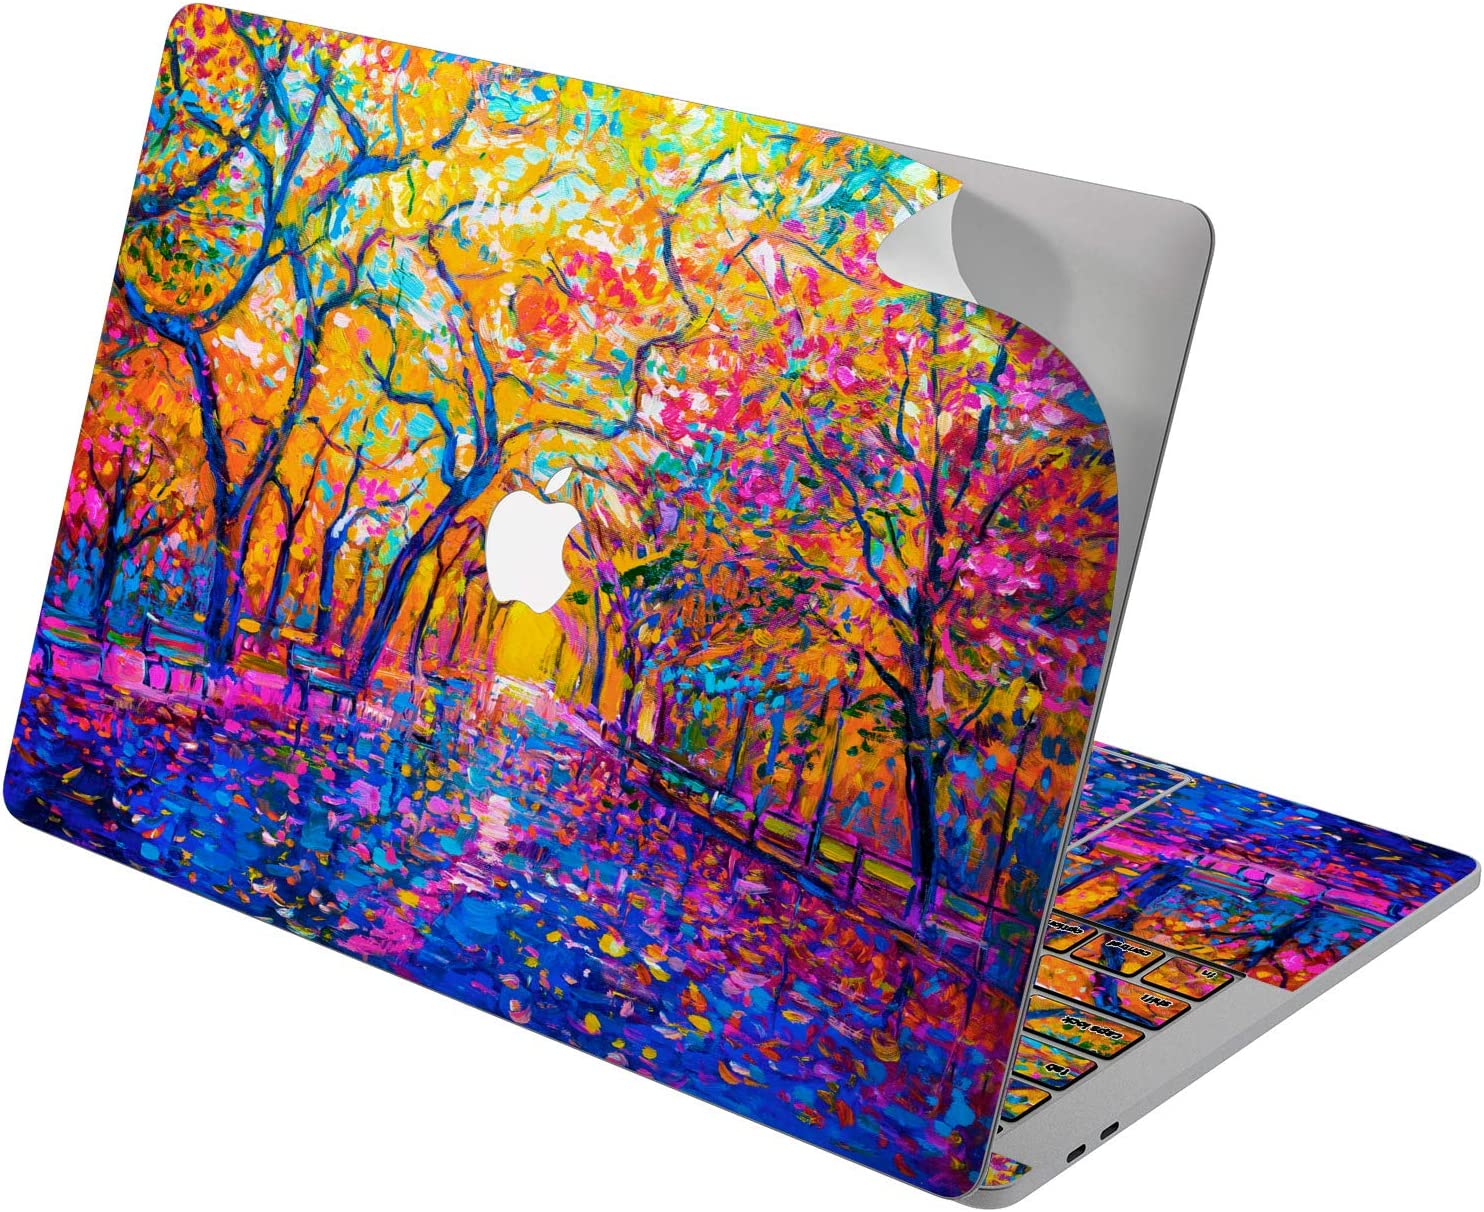 "Cavka Vinyl Decal Skin for Apple MacBook Pro 13"" 2019 15"" 2018 Air 13"" 2020 Retina 2015 Mac 11"" Mac 12"" New Cover Design Bright Autumn Artwork Painting Colorful Sticker Print Protective Laptop Nature"